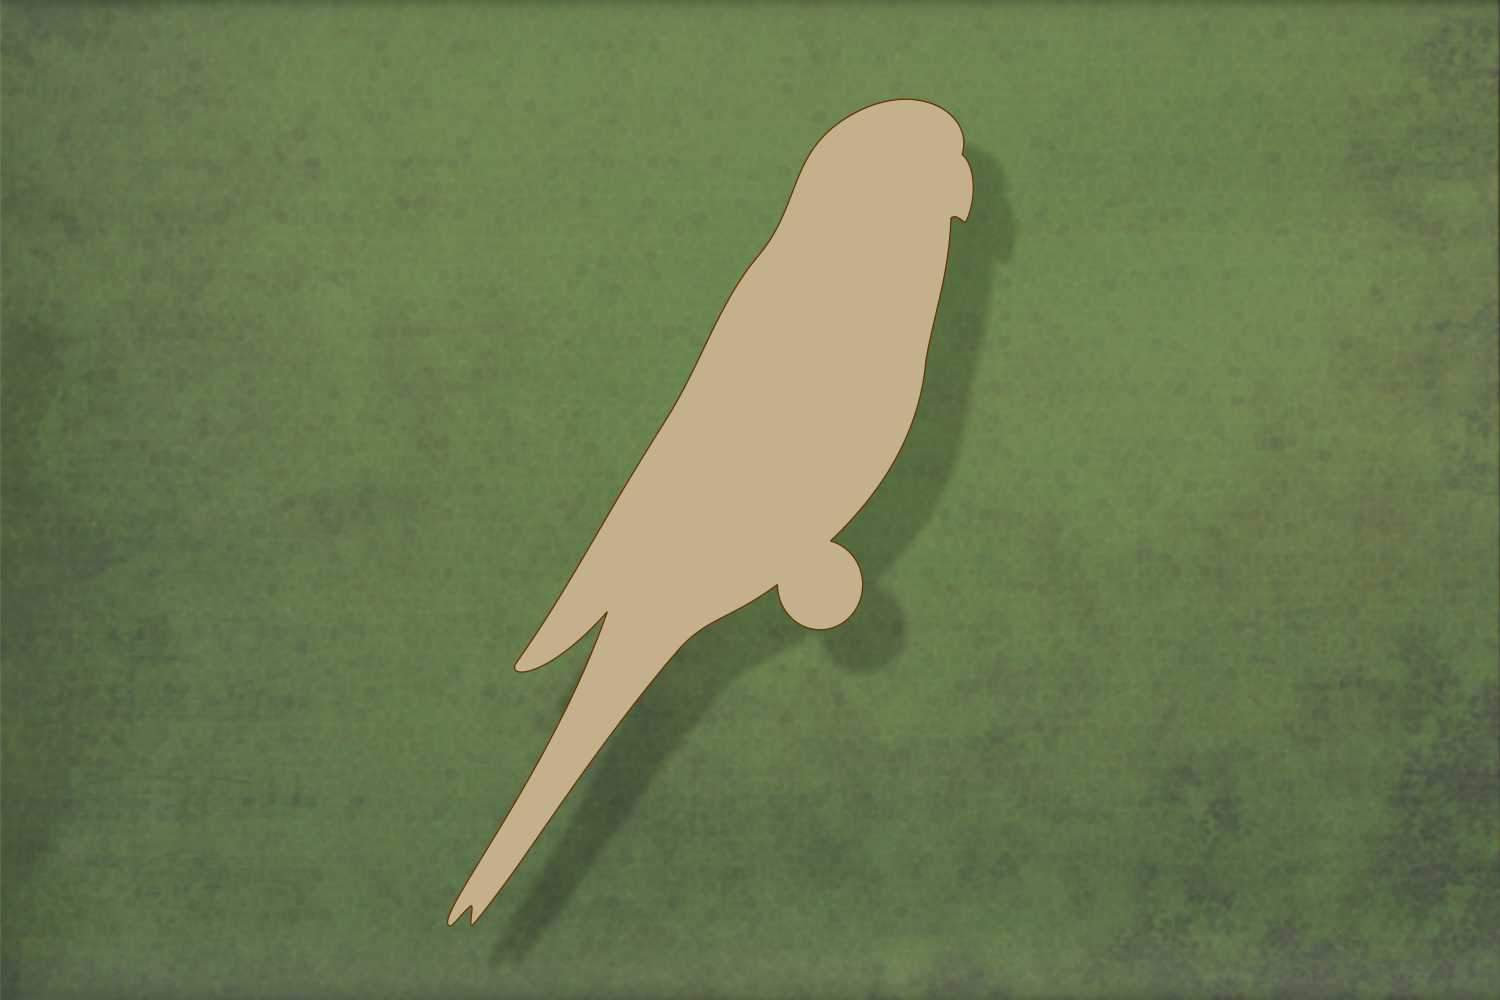 Laser cut, blank wooden Budgie shape for craft